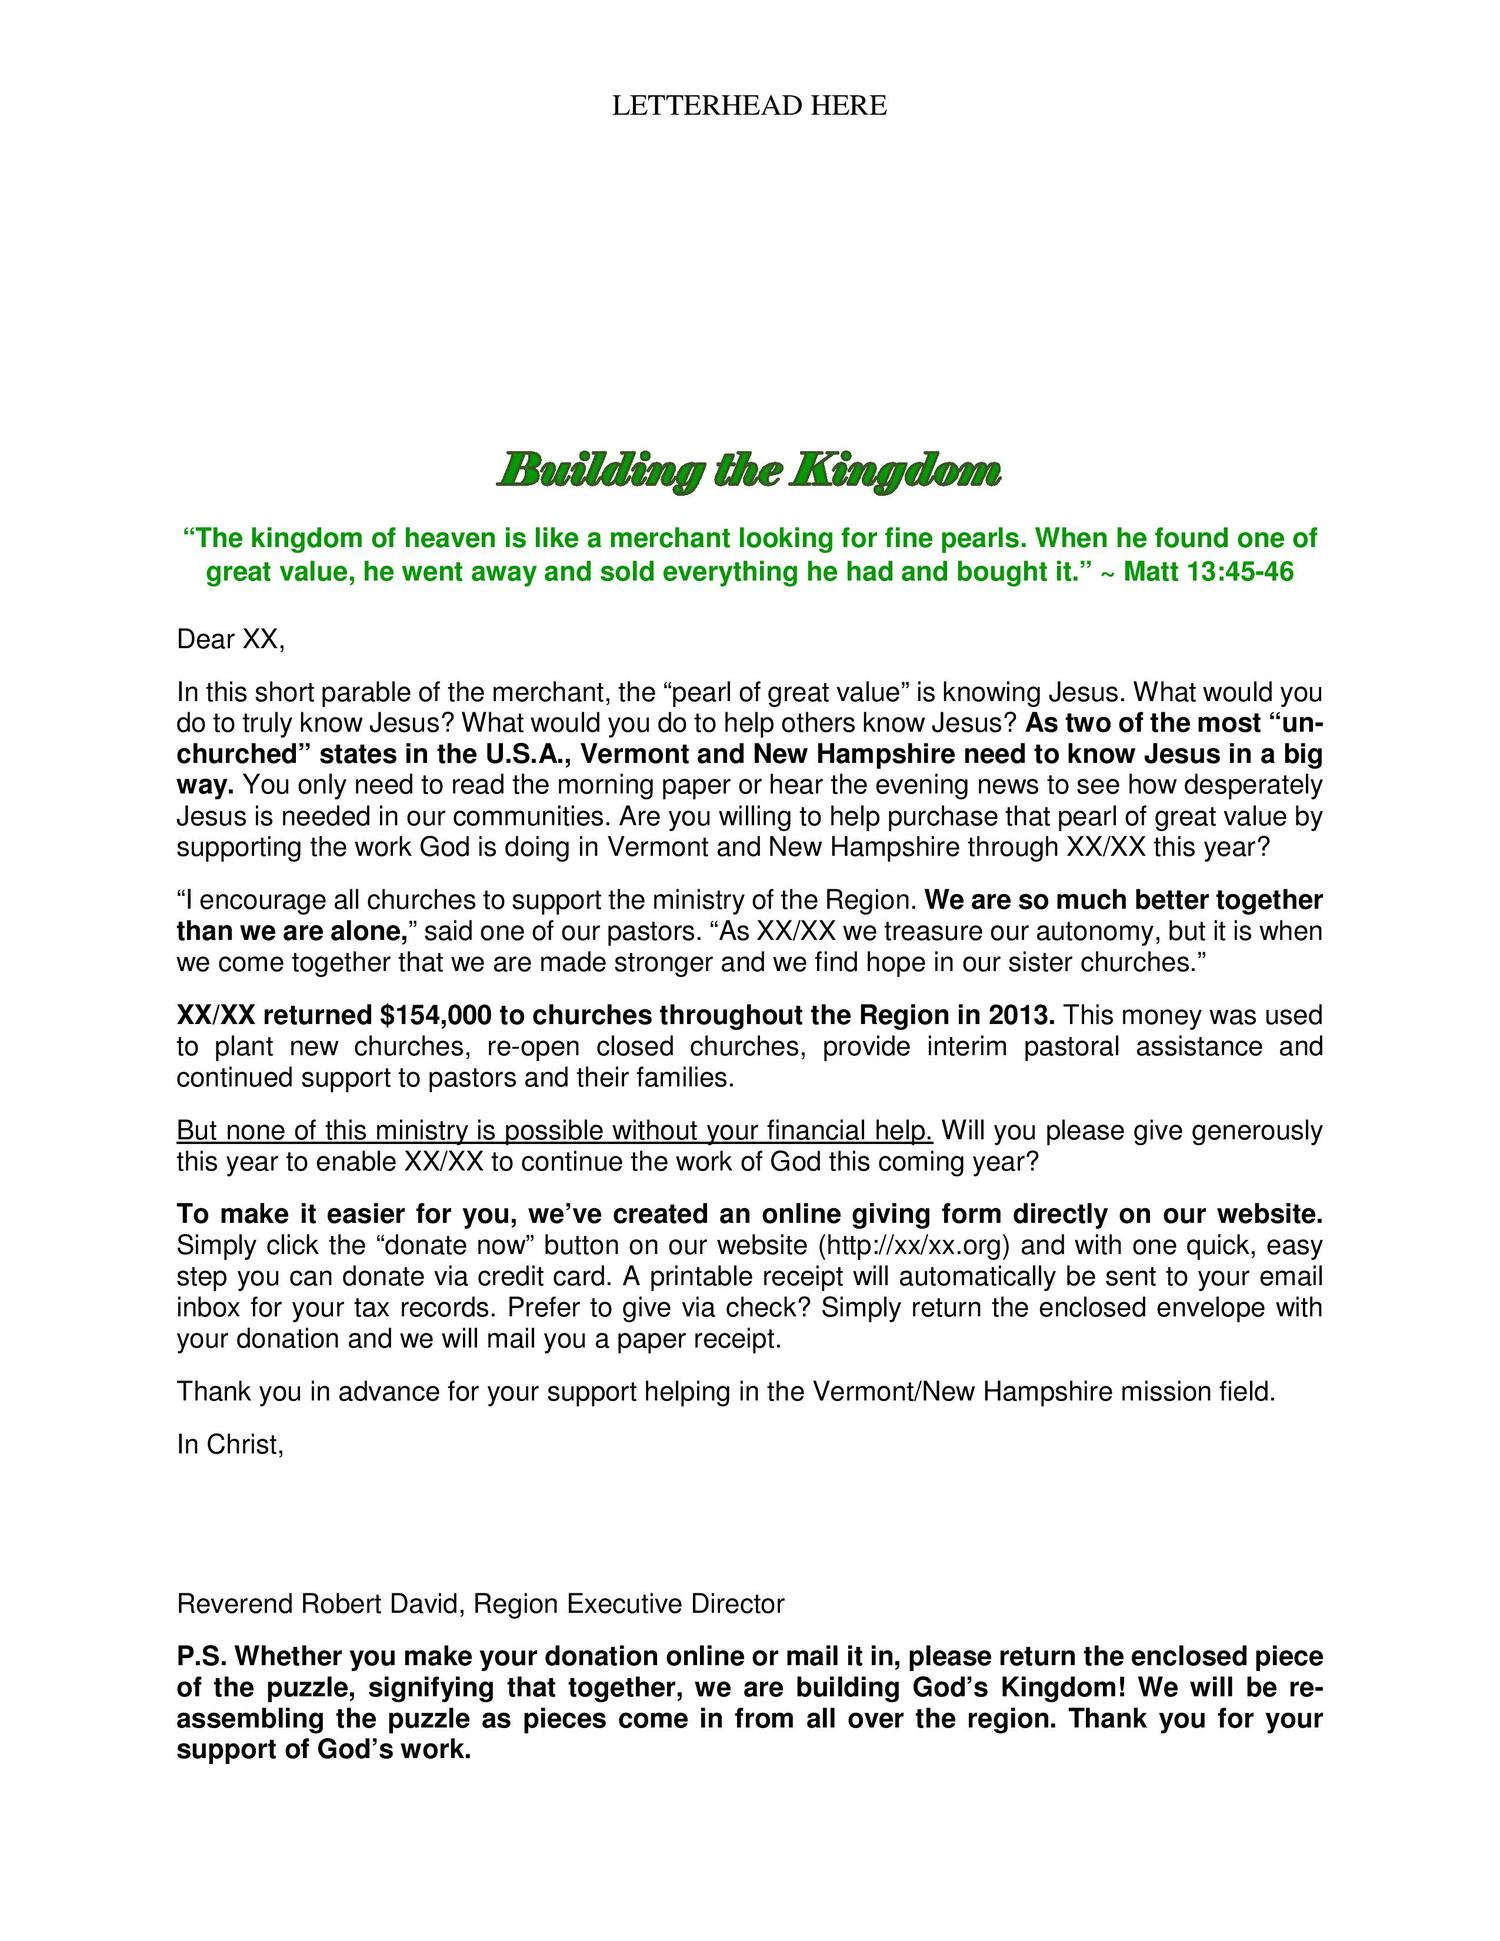 Donation Letter Template for Fundraiser - Fundraising Appeal Letters to Grab attention and Get Results by